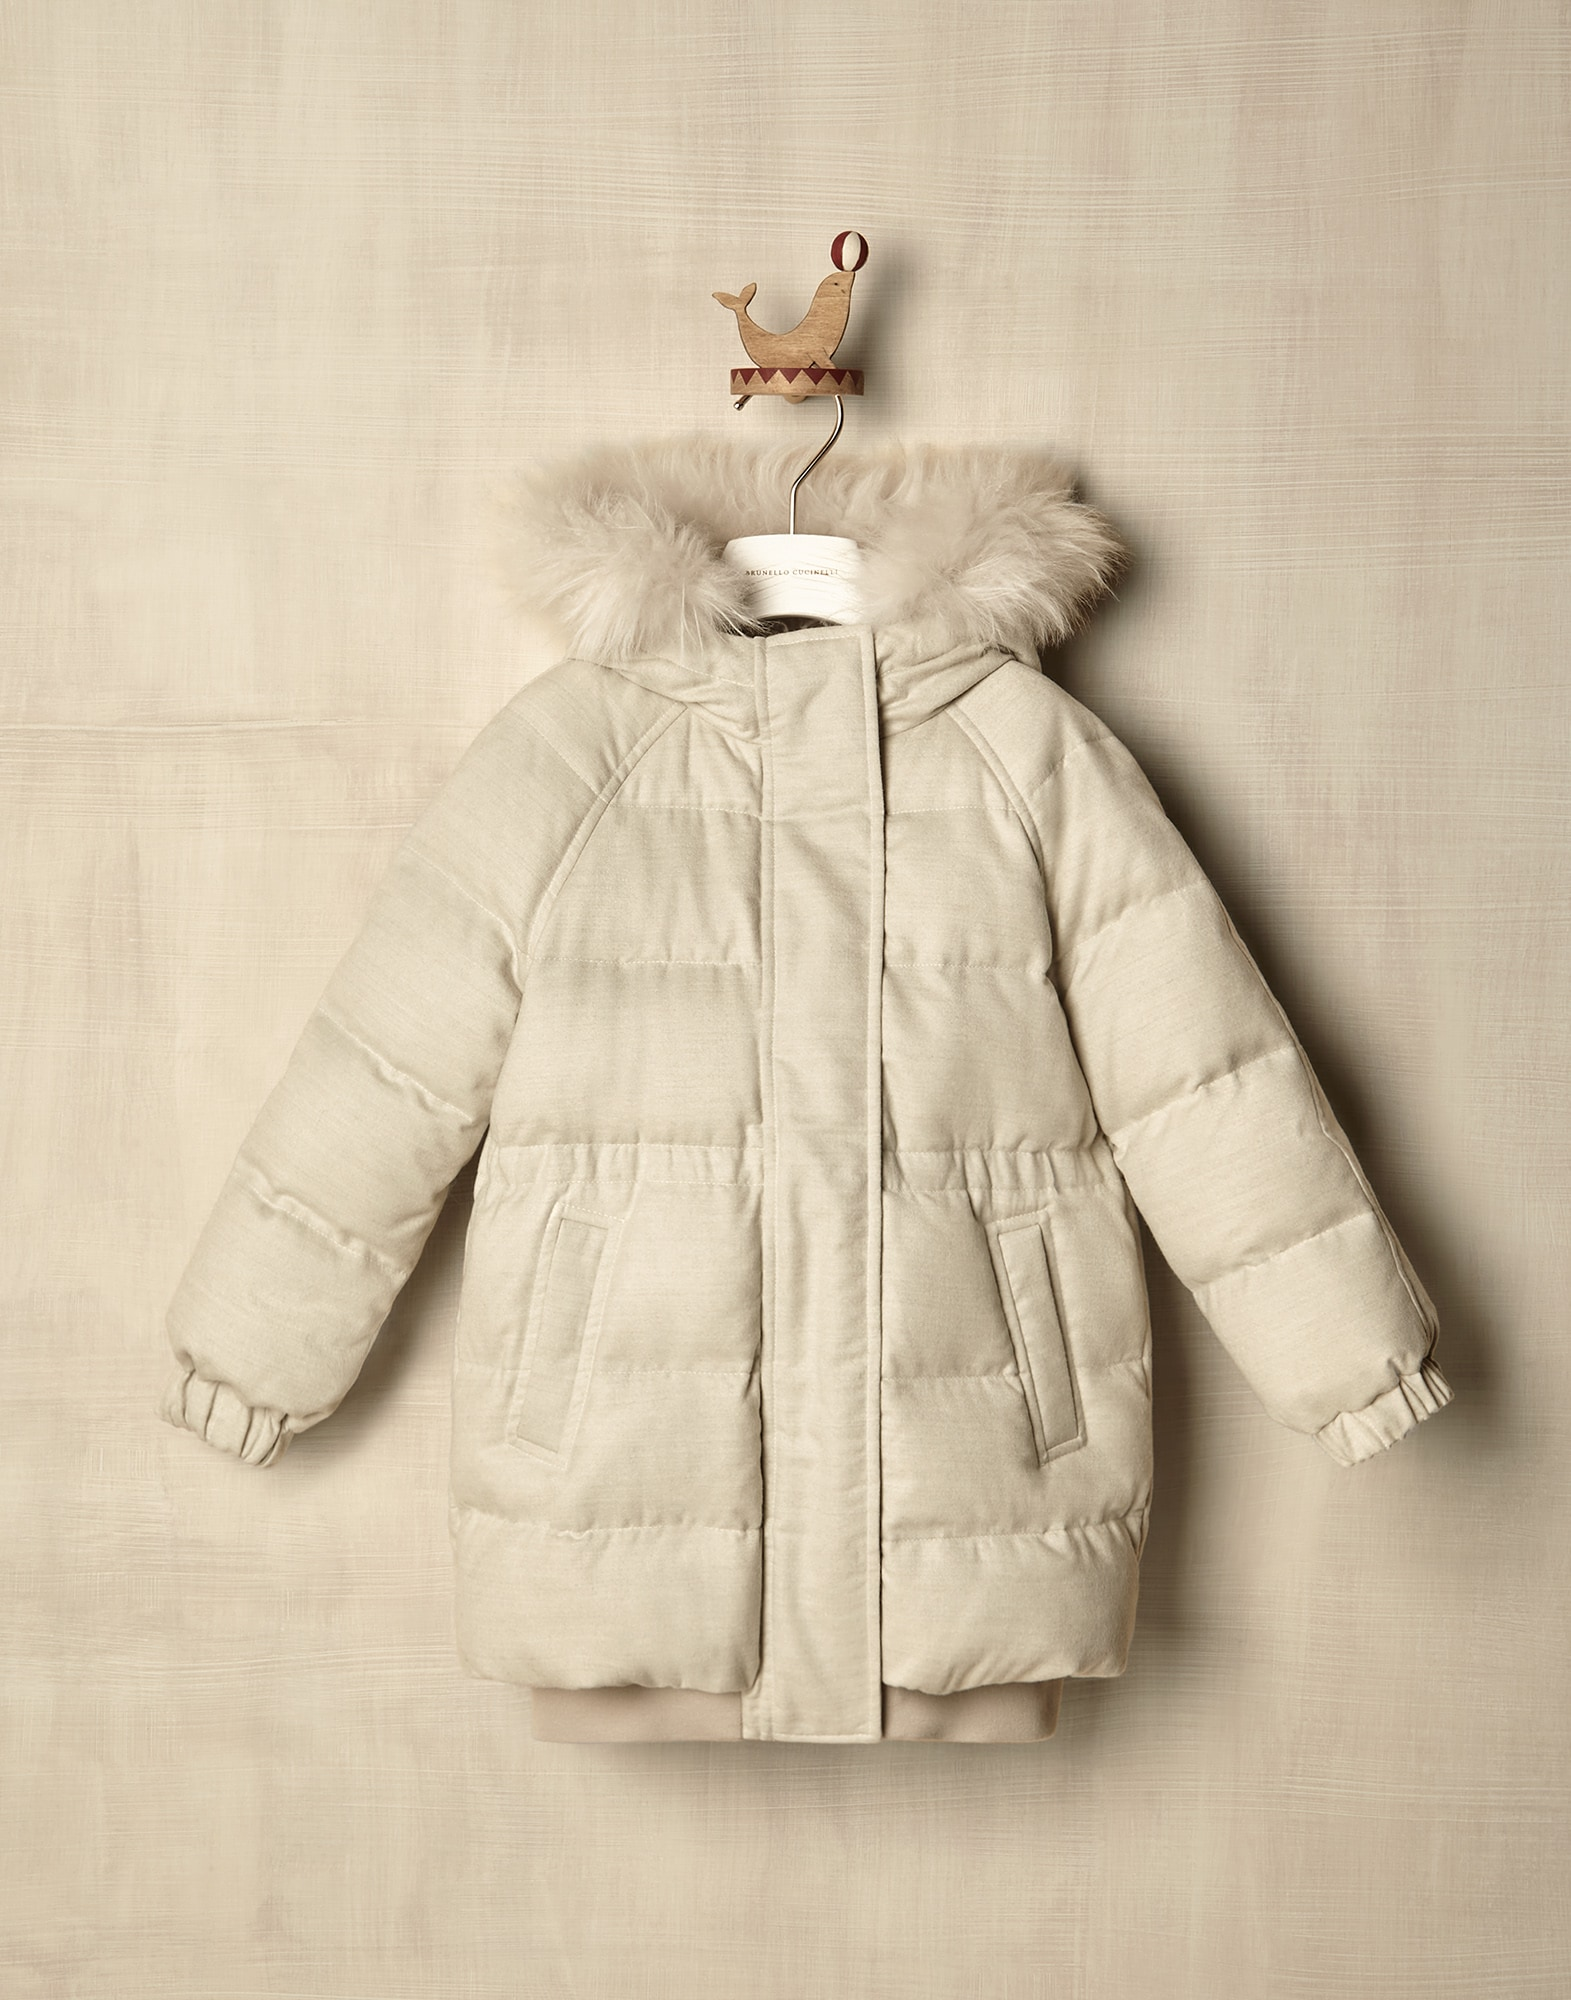 Down Jacket - Front view